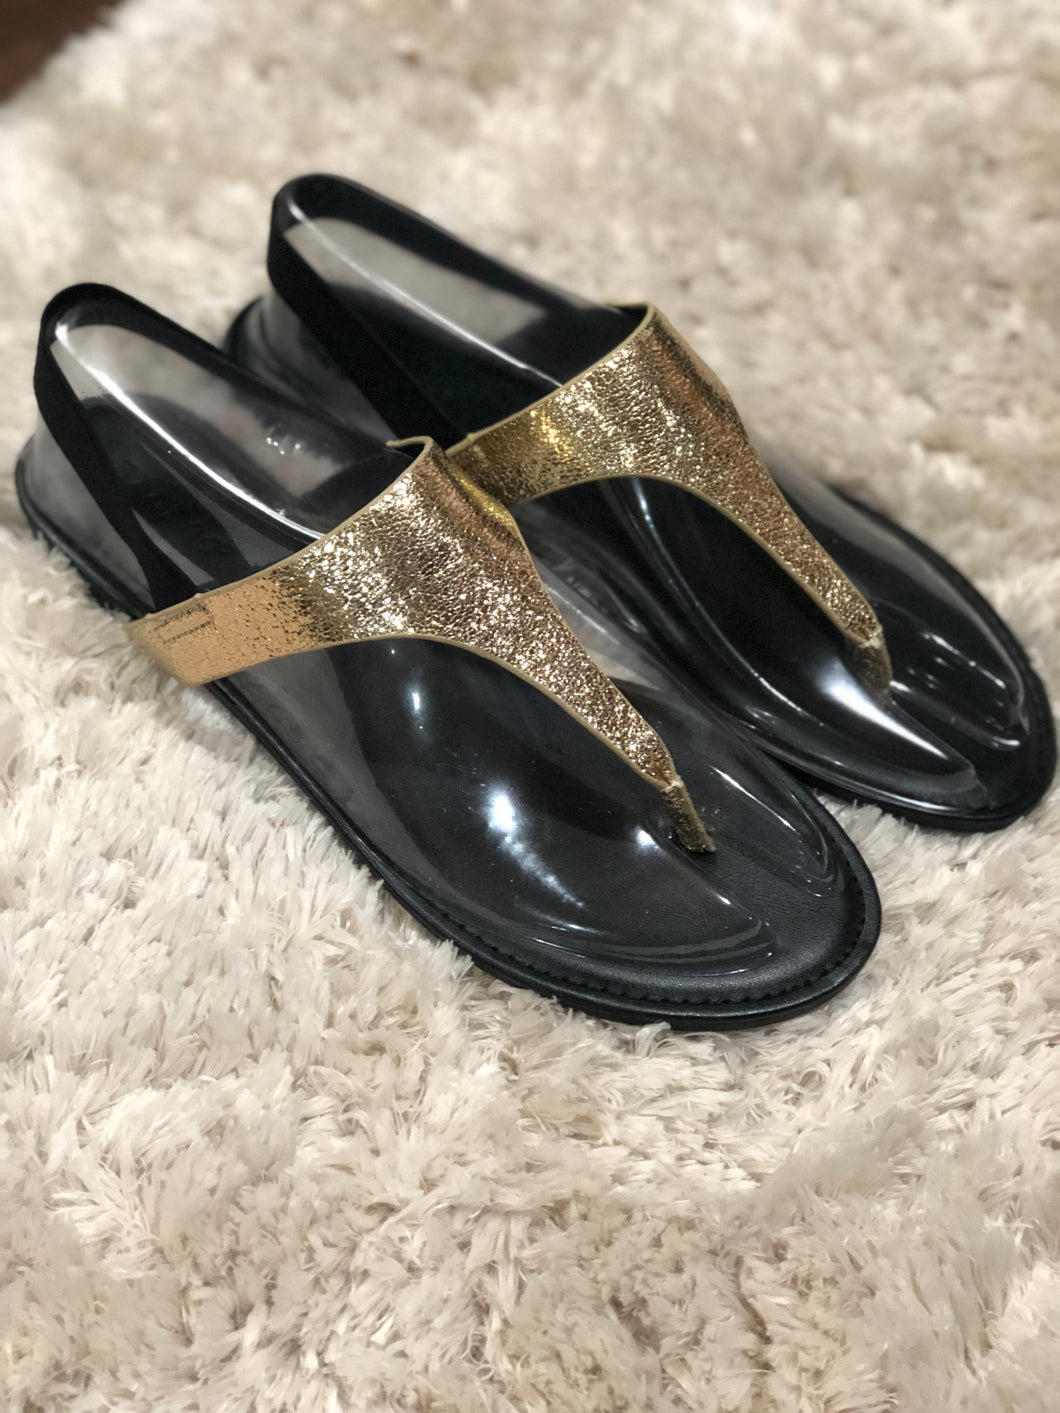 SALE! Gold Sling Back Sandals